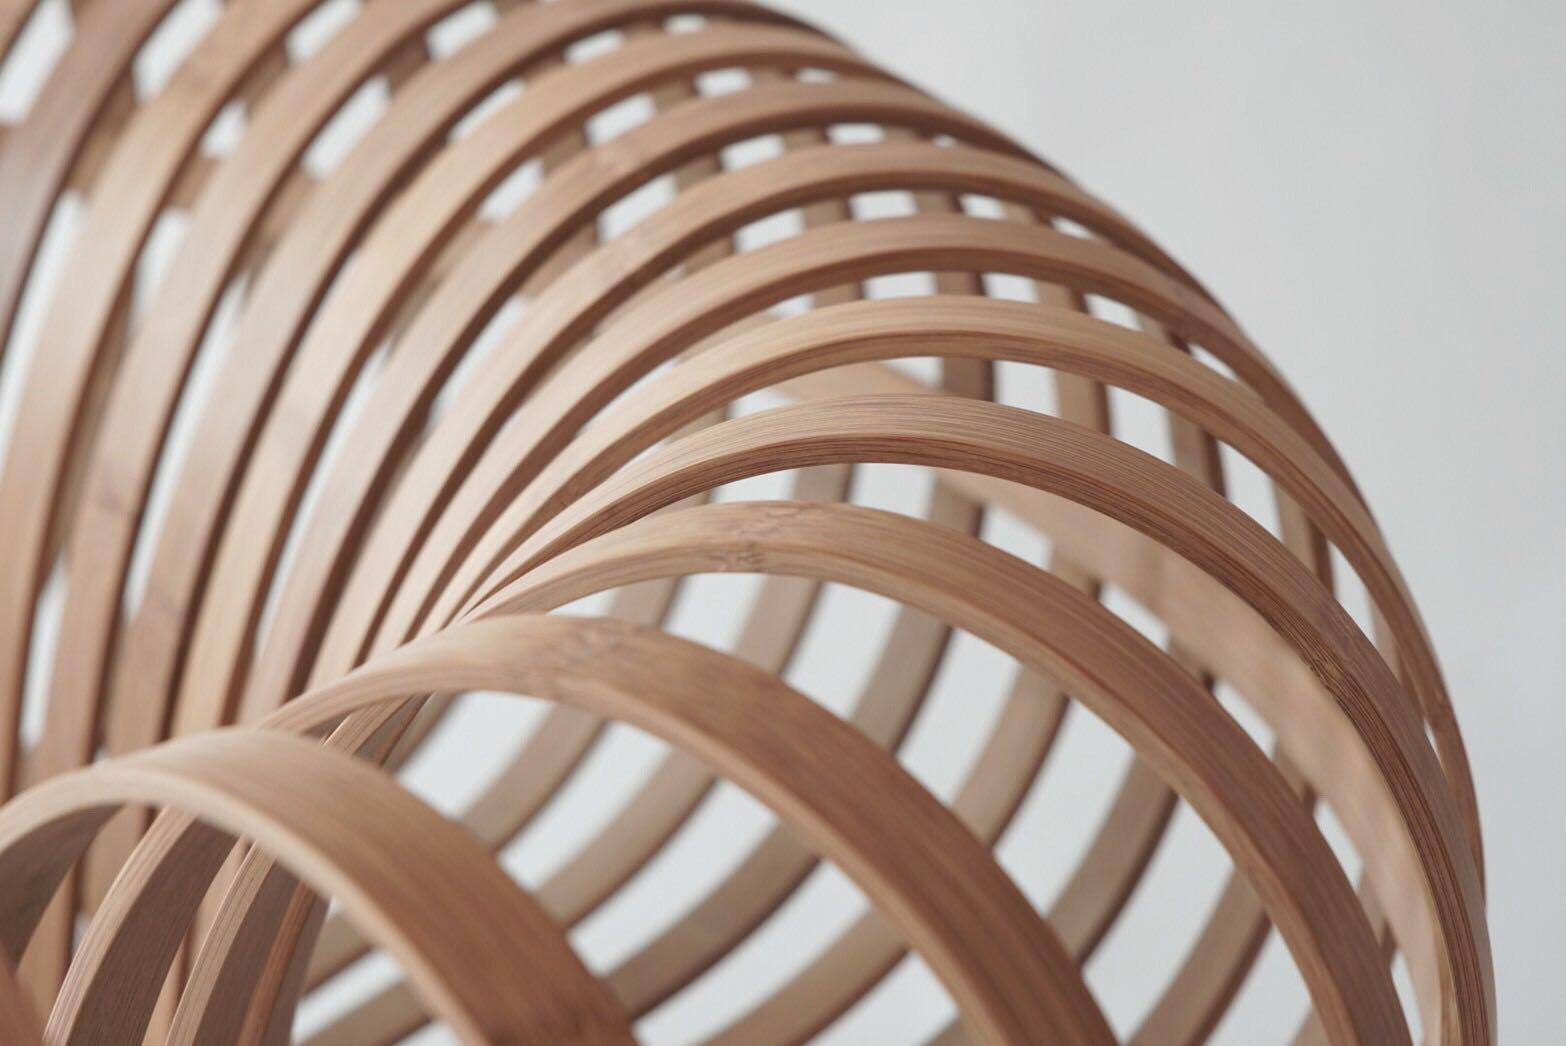 Jin Kuramoto Designed A Bamboo Chair Titled A New Layer II. By Combining  Both The Handmade Bamboo Bending Process To The Natural Indigo Dyed  Technique ...